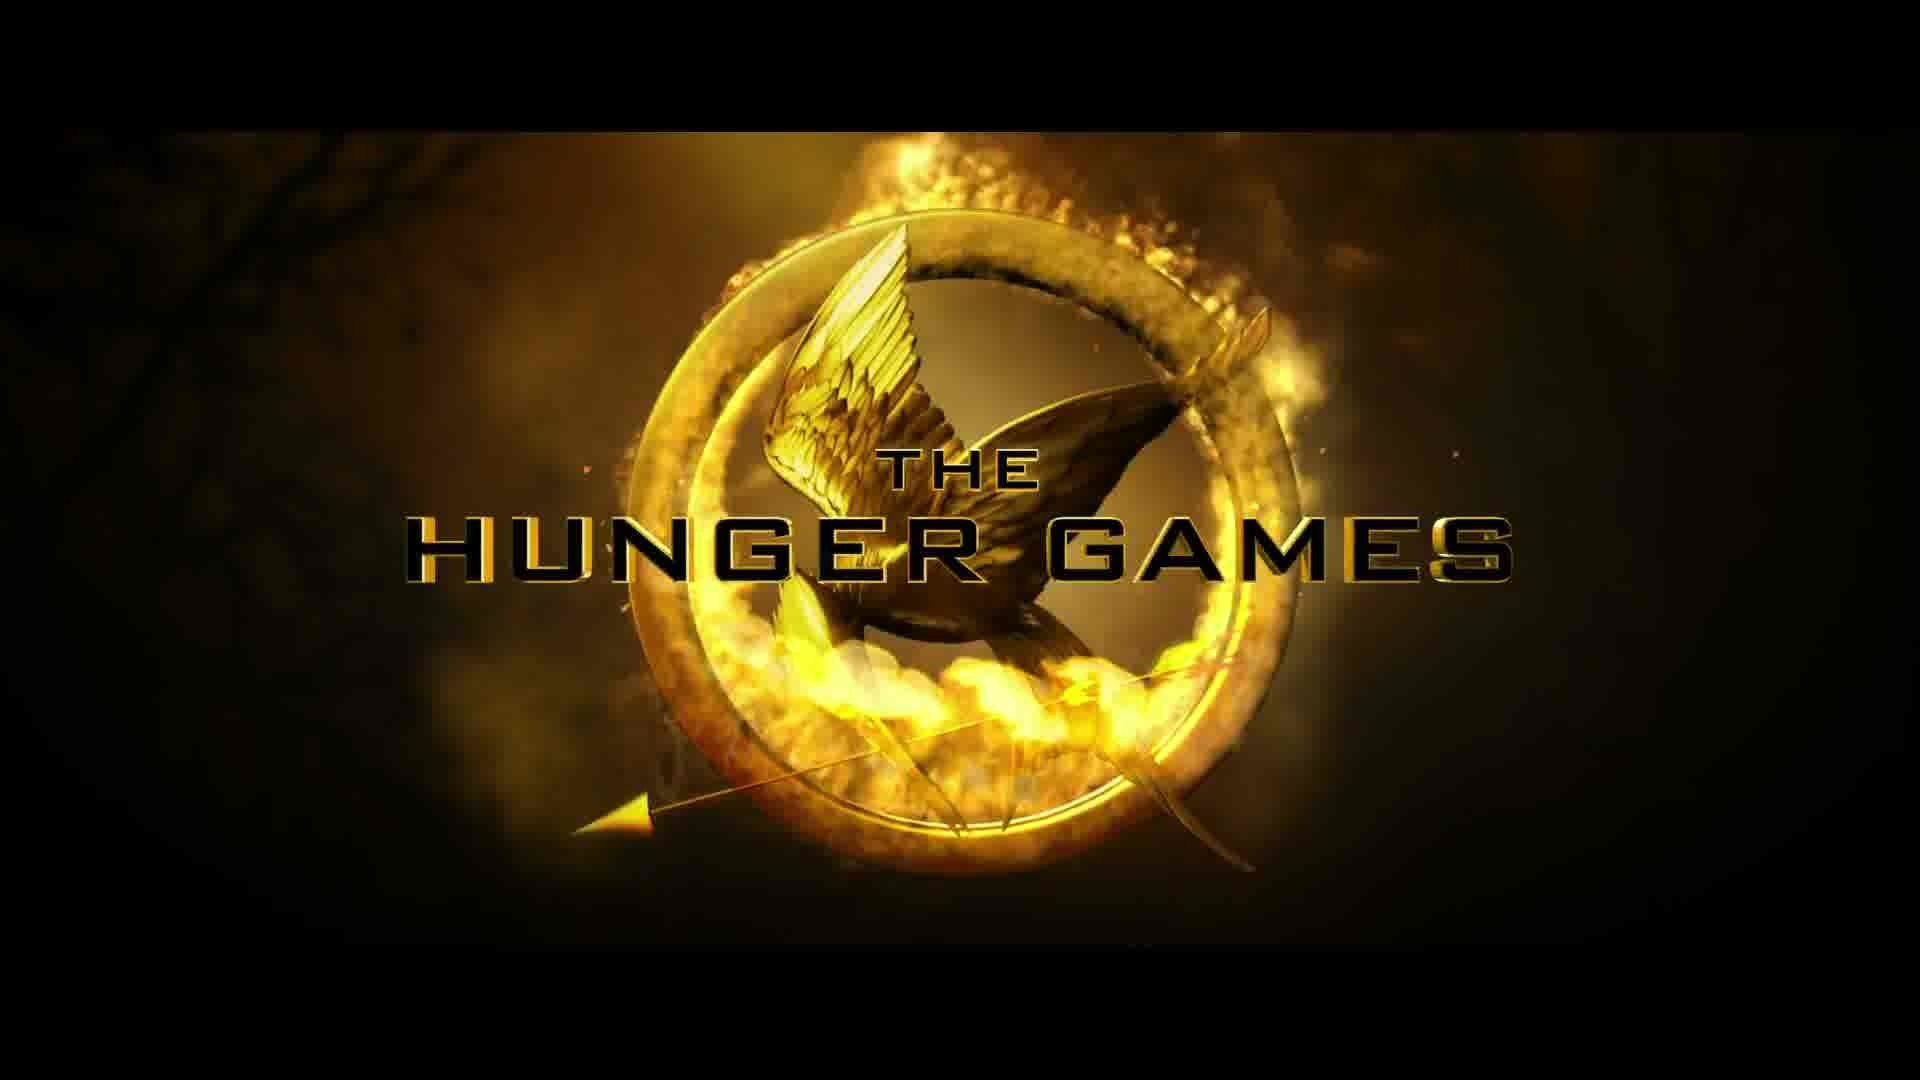 1920x1080 The Hunger Games Â« Desktop Background Wallpapers HD